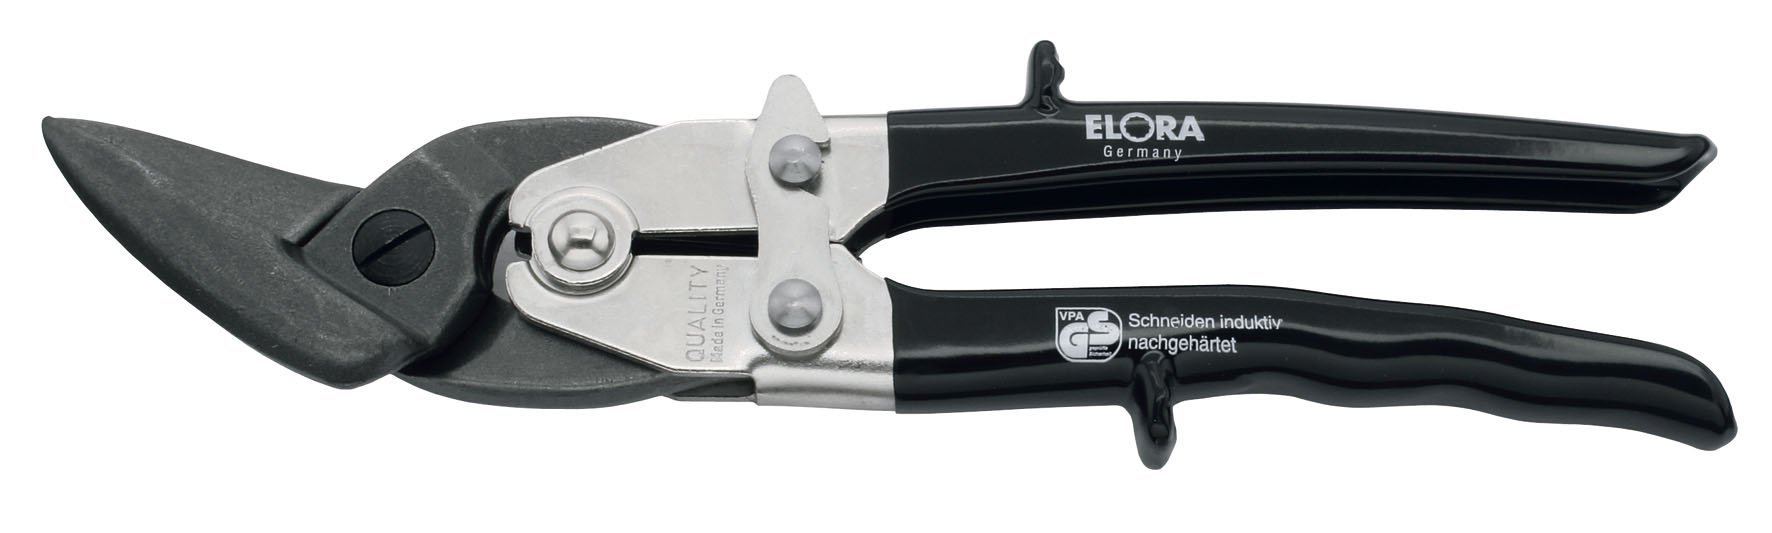 Elora 484000026000 Shape Cutting Lever Tin Snip right 484R